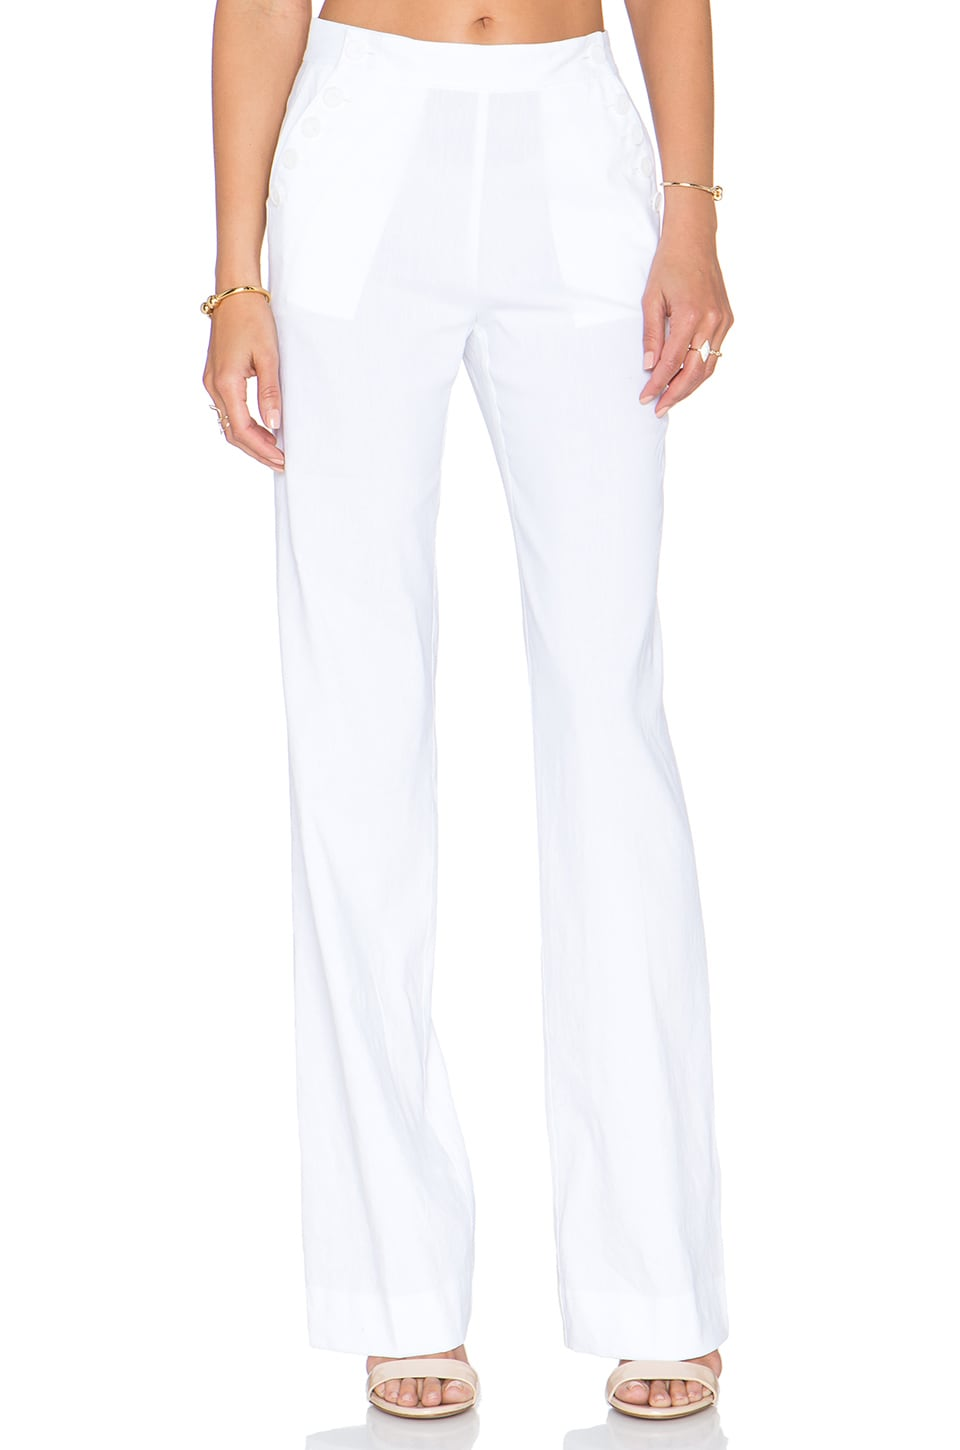 Theory Alrigo Pant in White